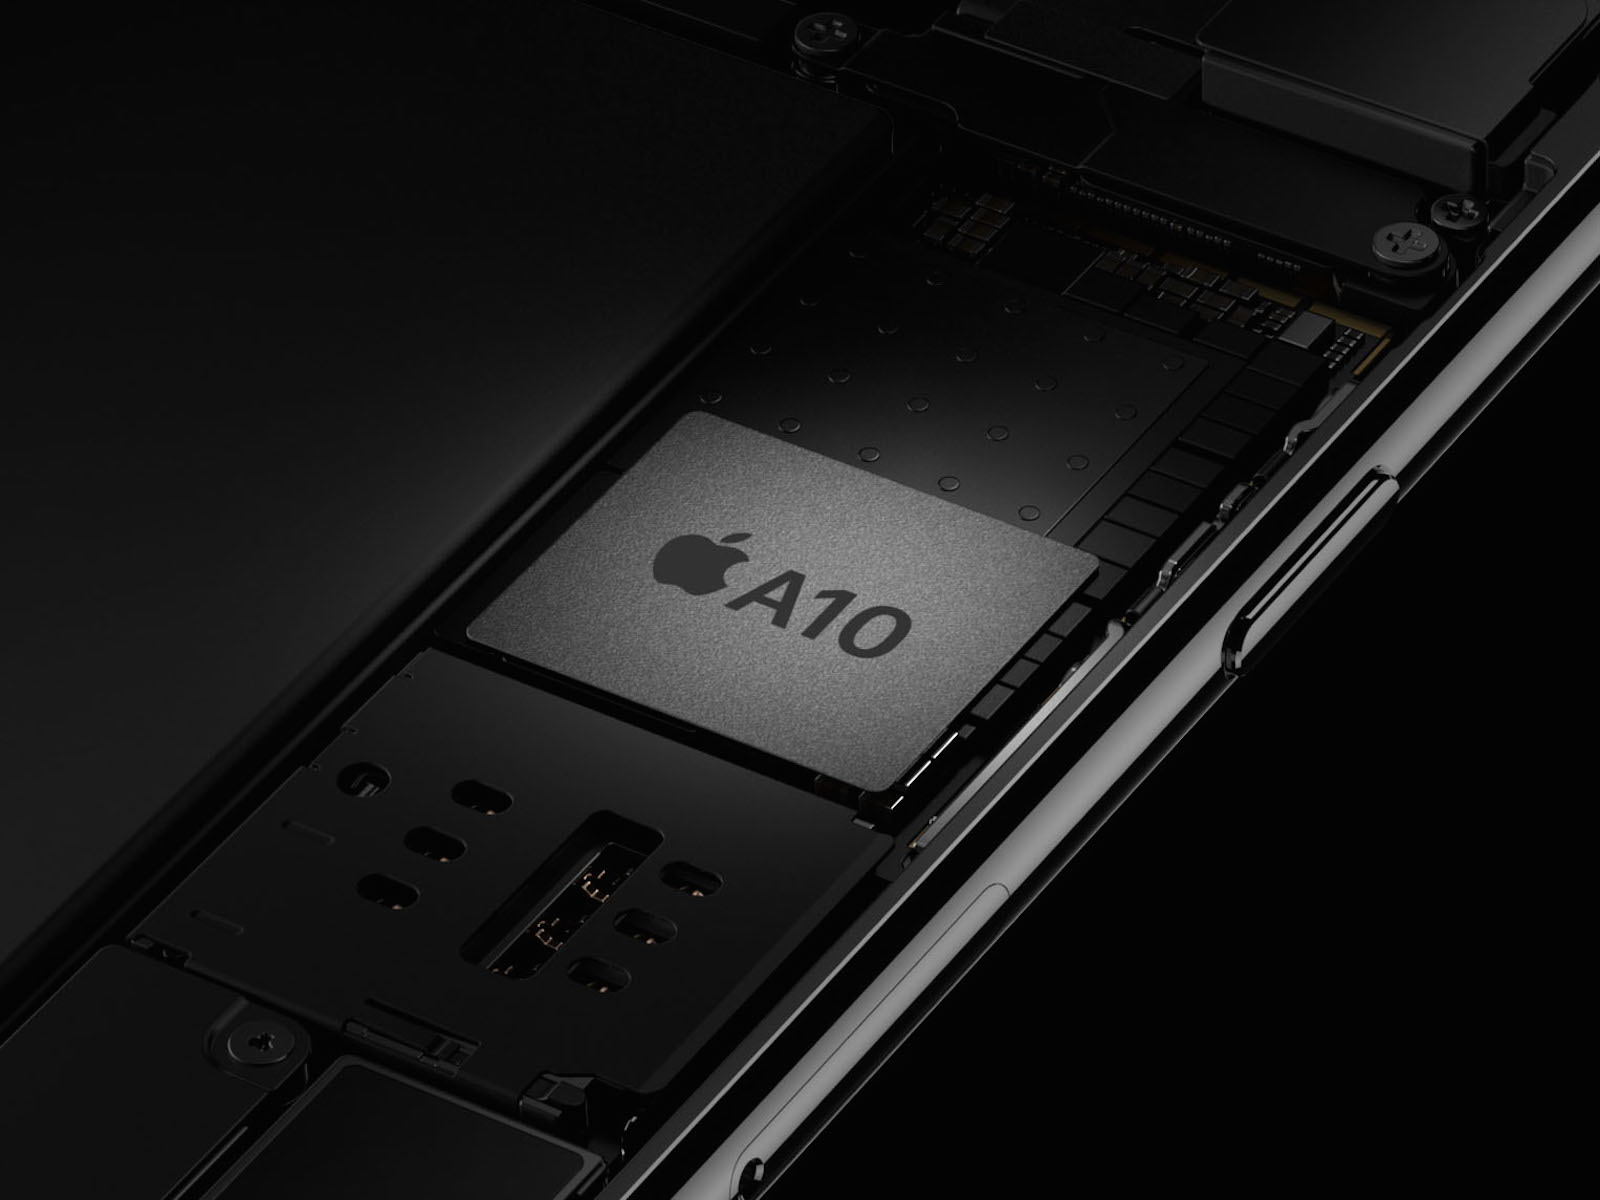 iPhone 7、iPhone 7 Plus プロセッサ A10 Fusion